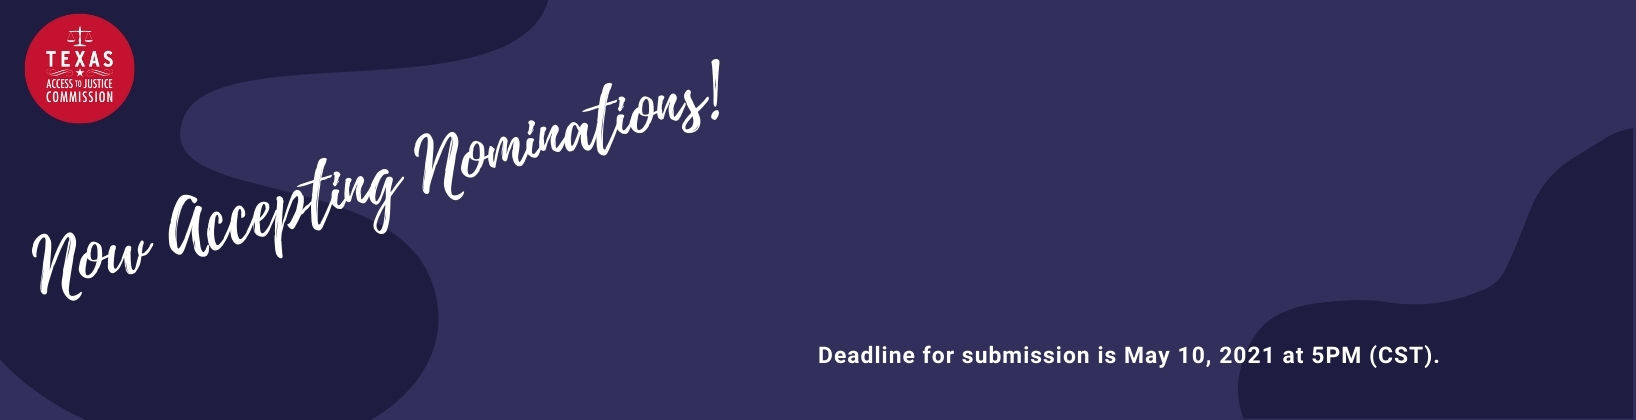 Now Accepting Nominations! Deadline for submission is May 10, 2021 at 5PM (CST).